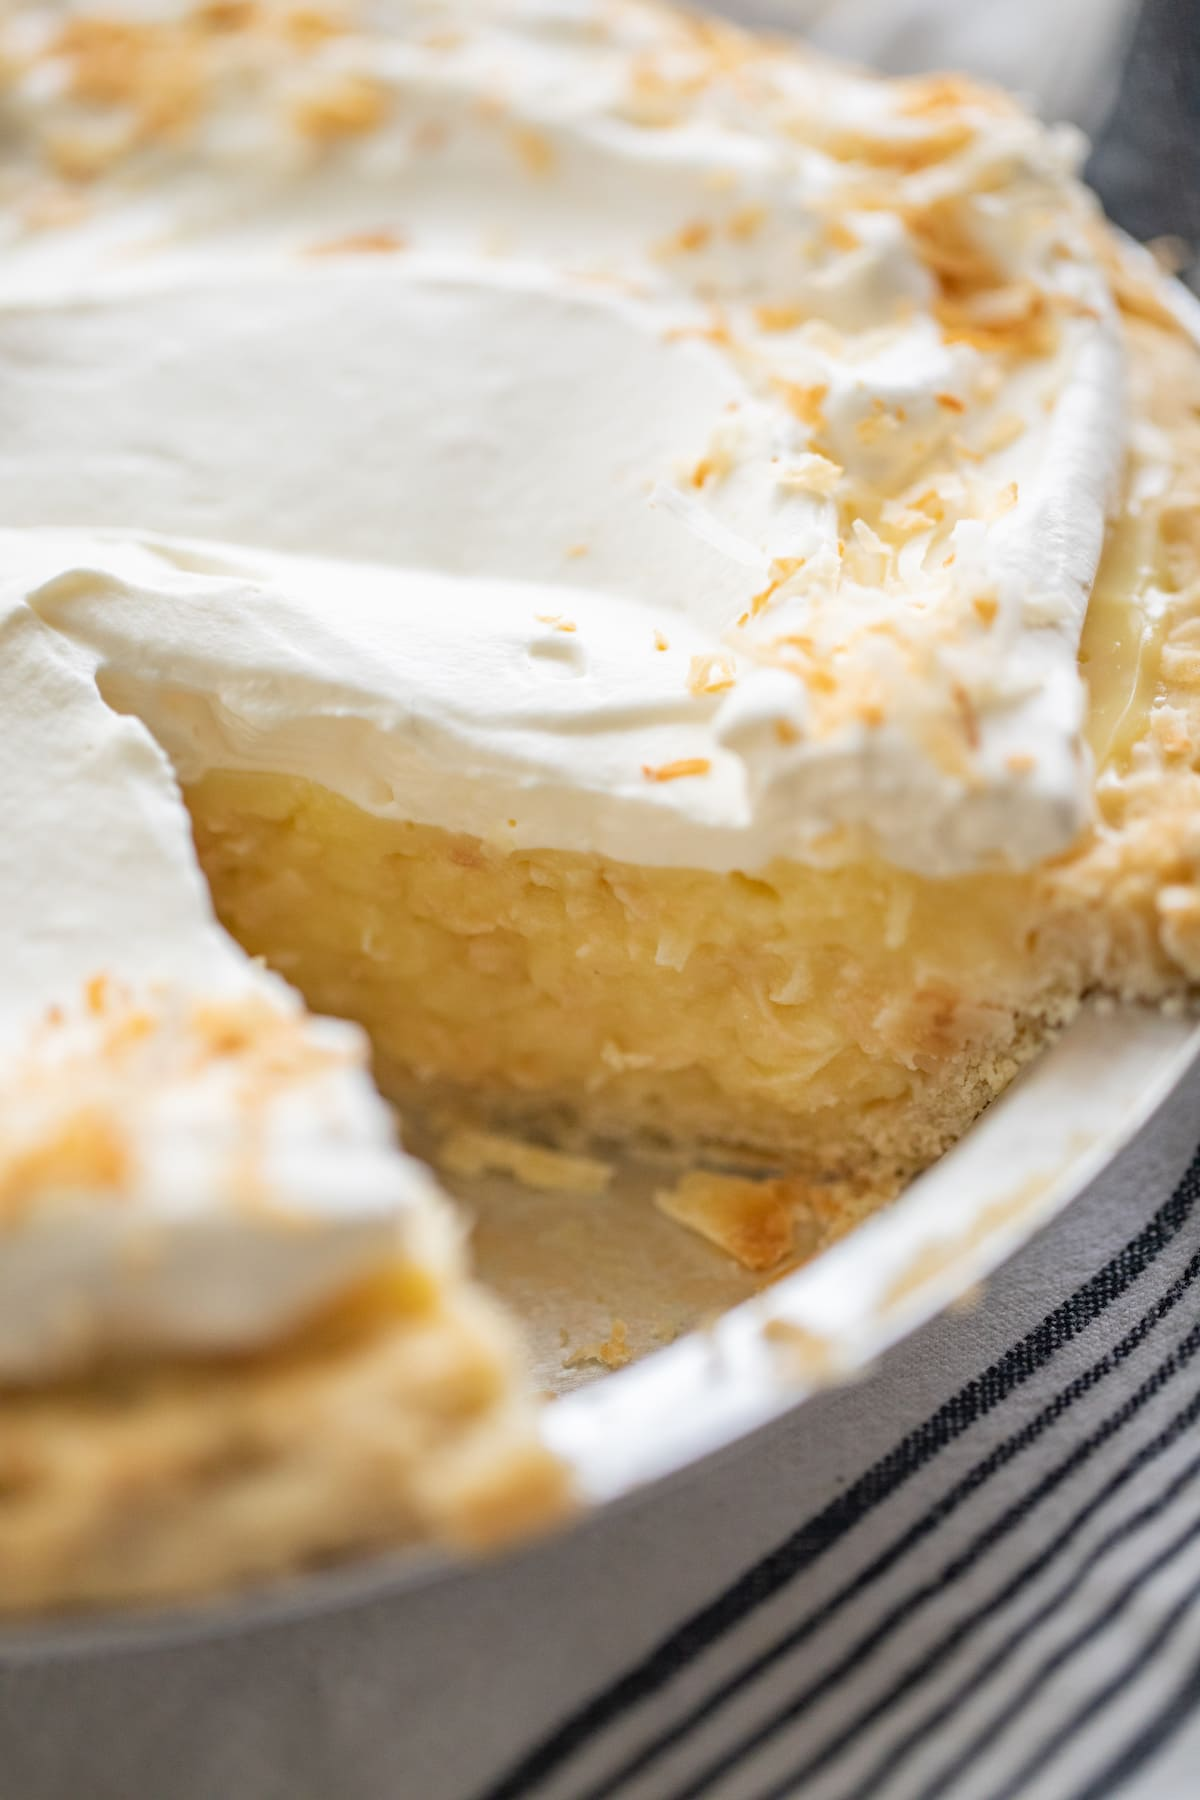 slice missing from pie